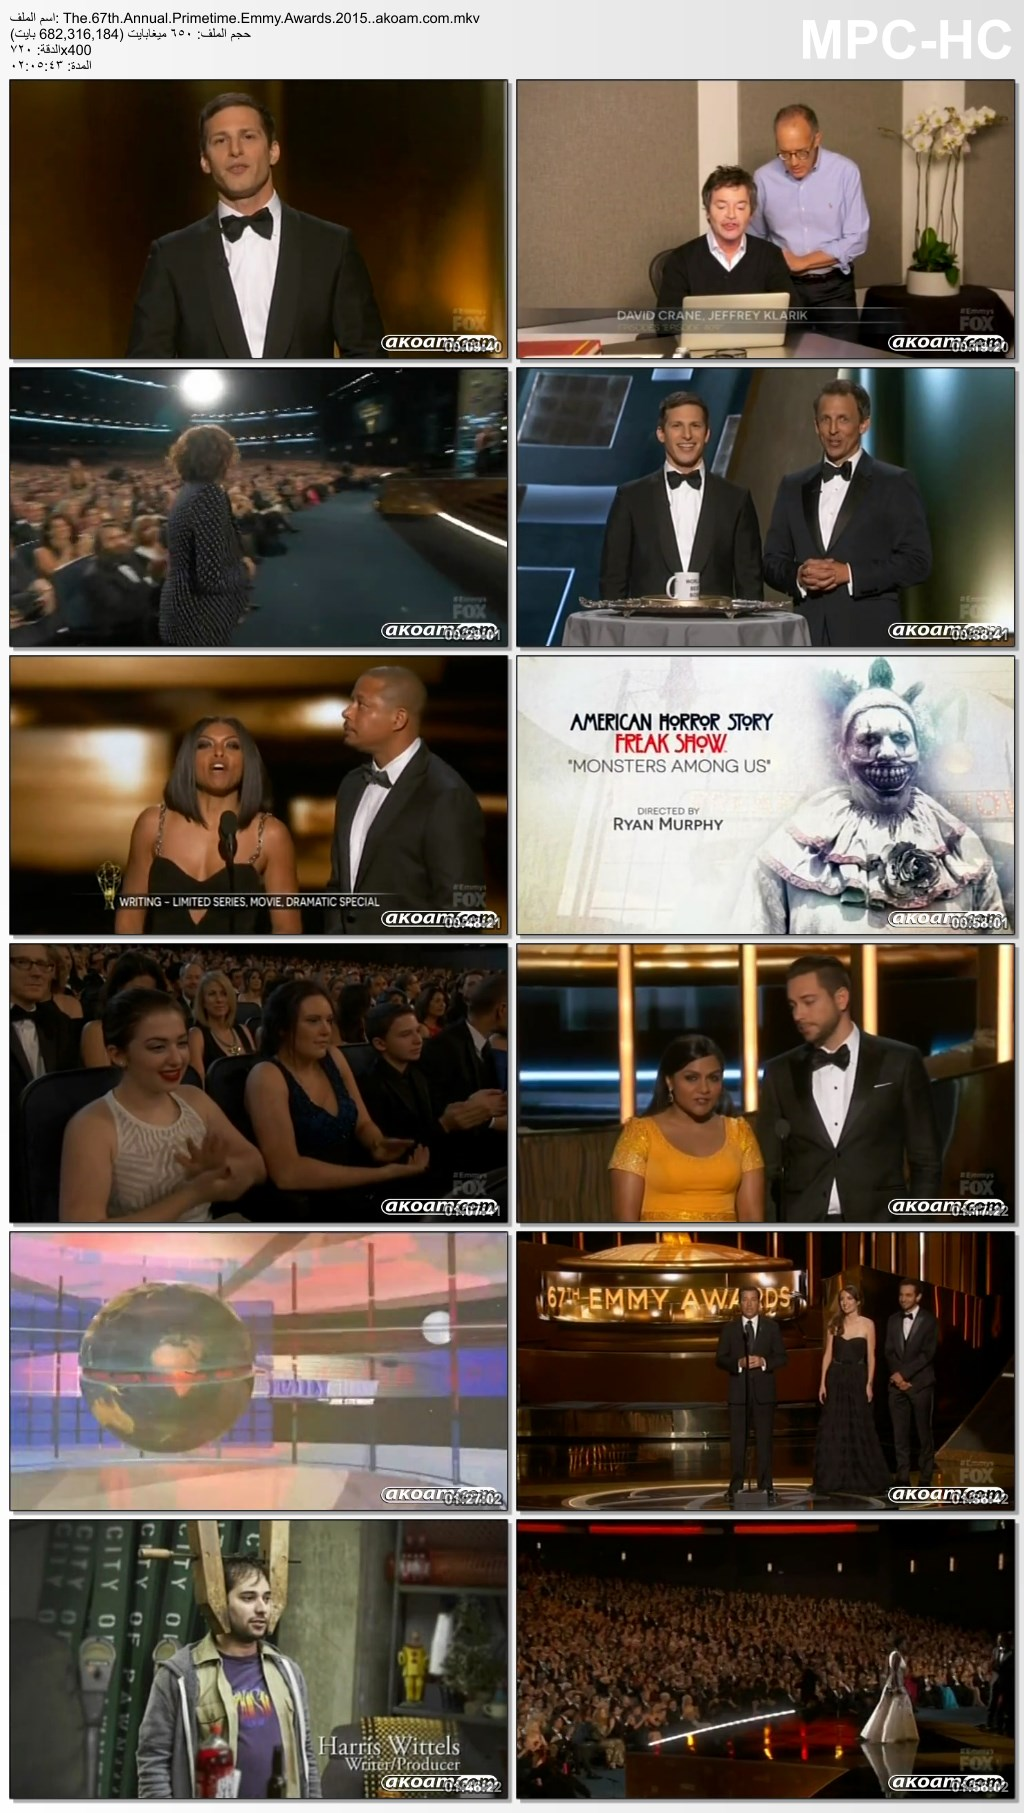 The 67th Annual Primetime Emmy Awards,The 67th Annual Primetime Emmy Awards 2015,حفل توزيع الجوائز العالمي